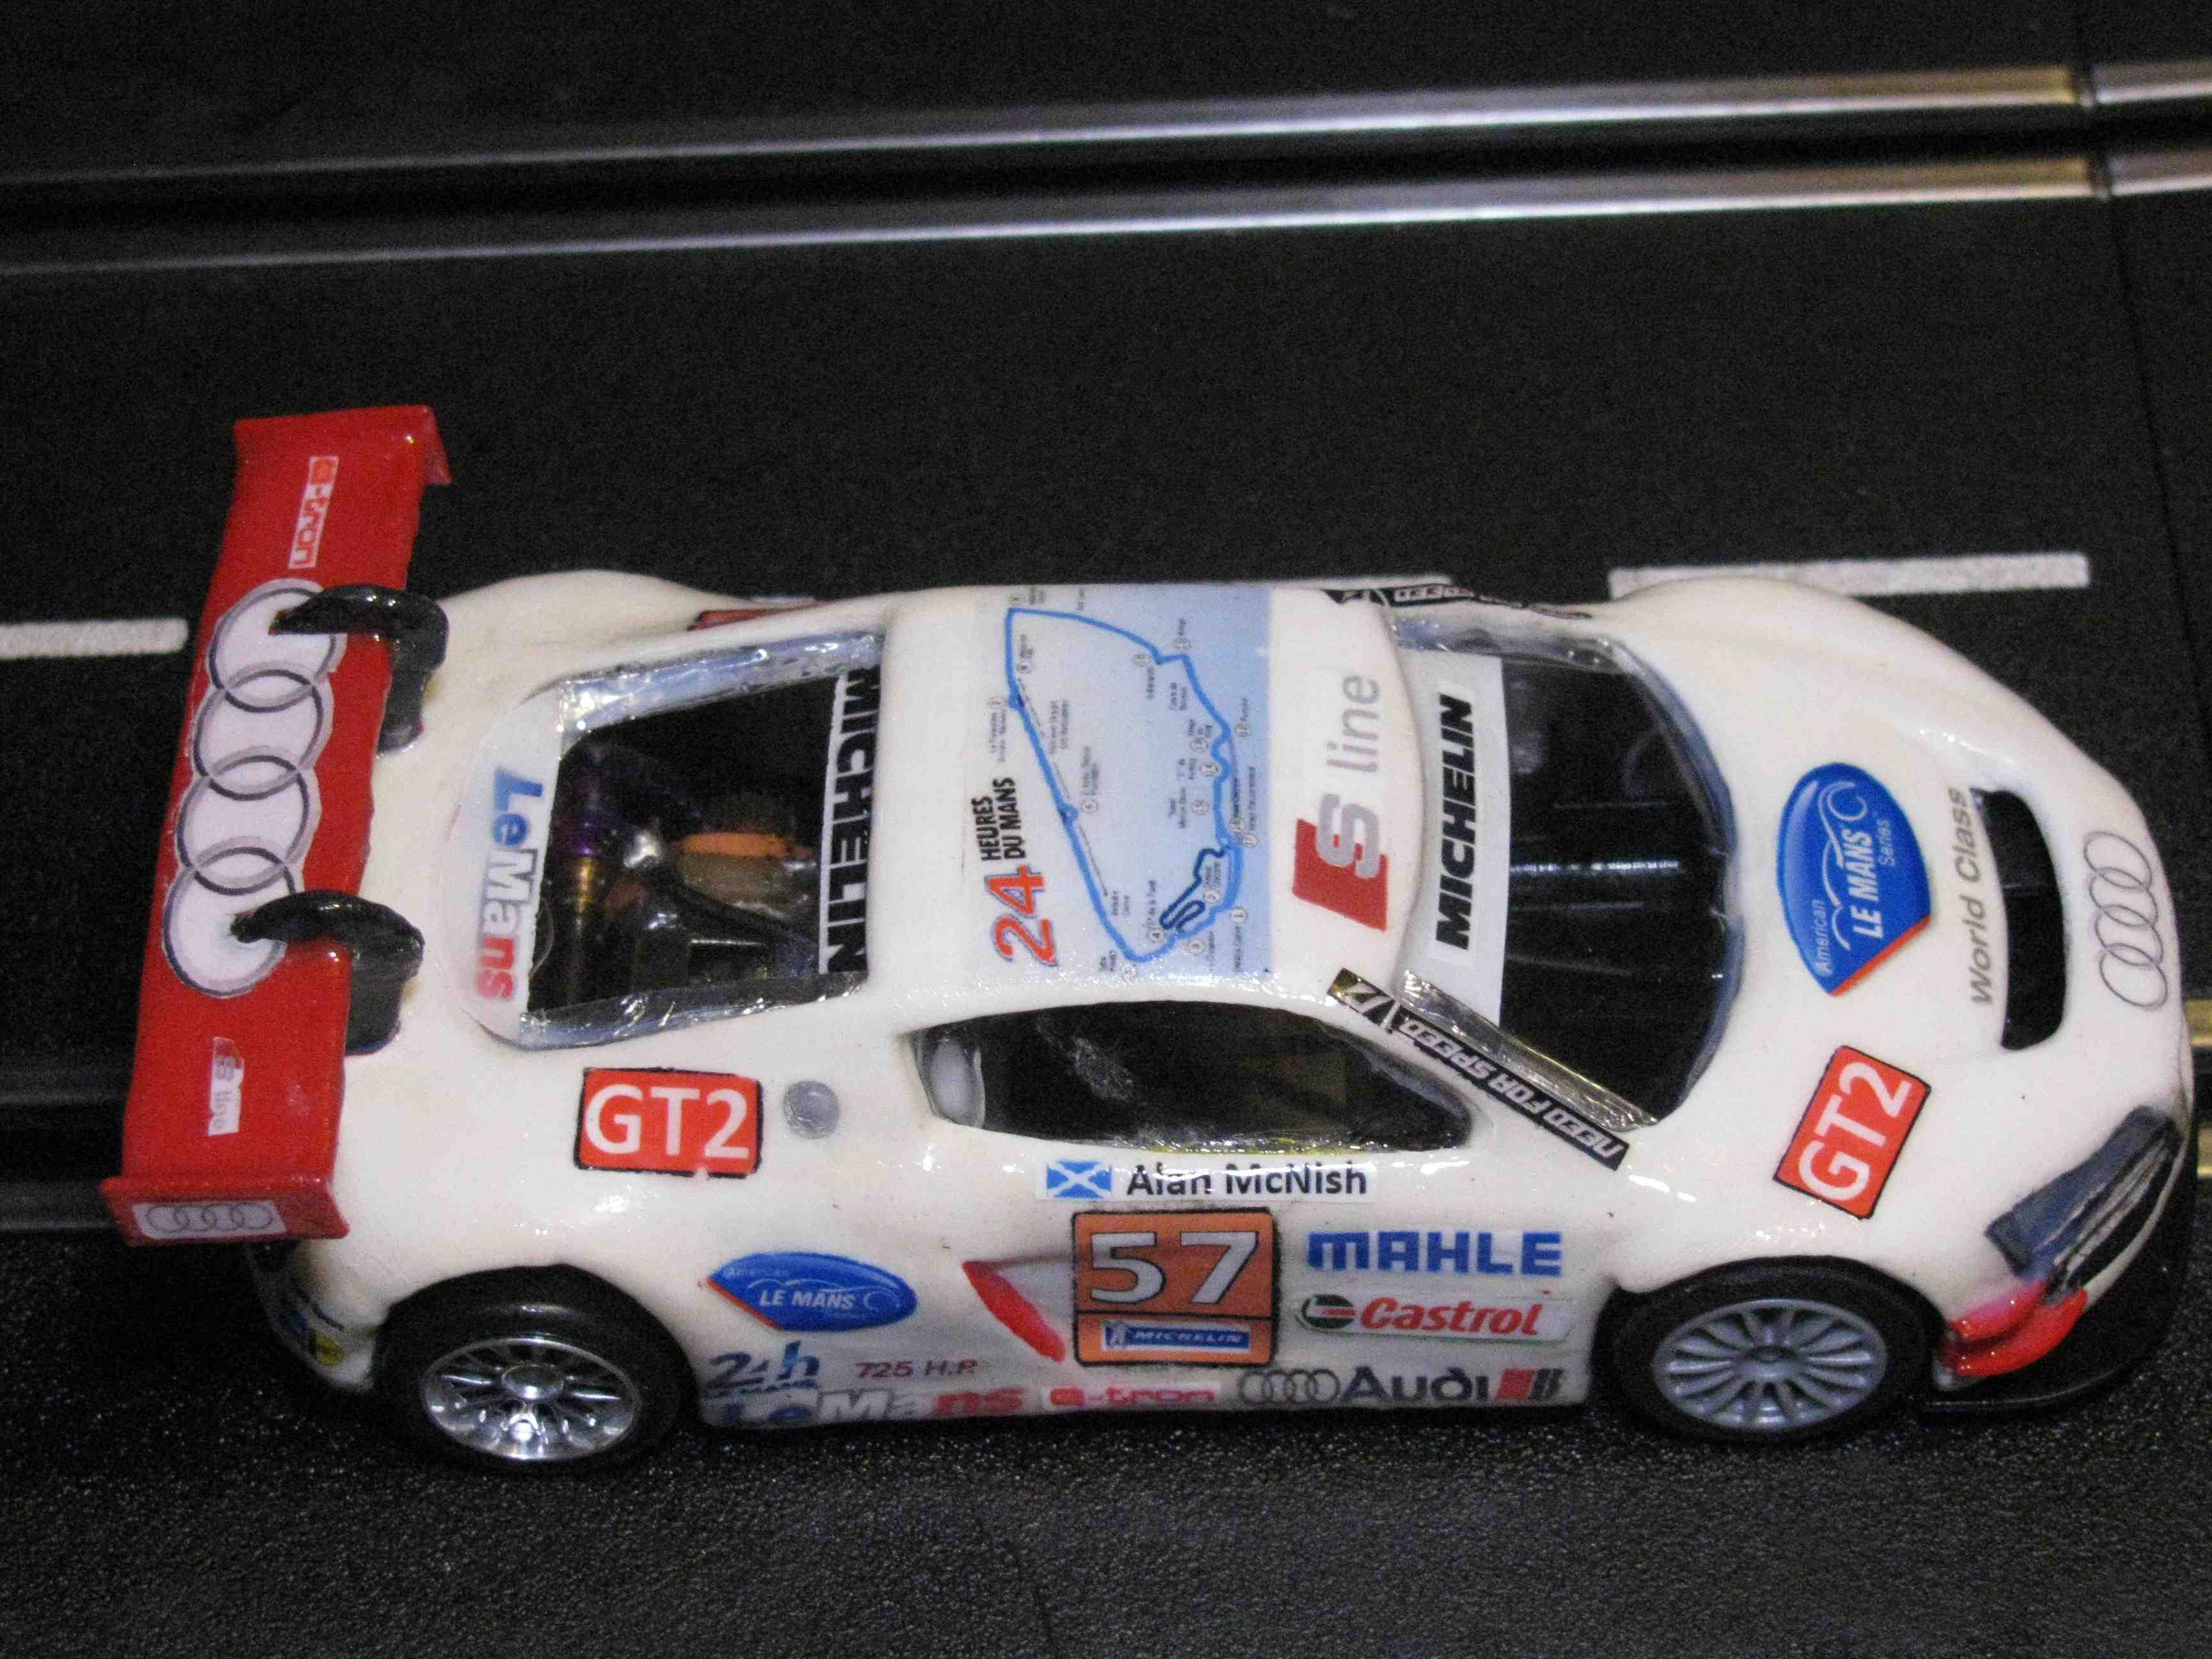 * SORRY YOU REALLY MISSED OUT, SOLD * Hornby AUDI R8 LMR GT Slot Car - Ultimate Racer with many upgrades 1:32 Scale